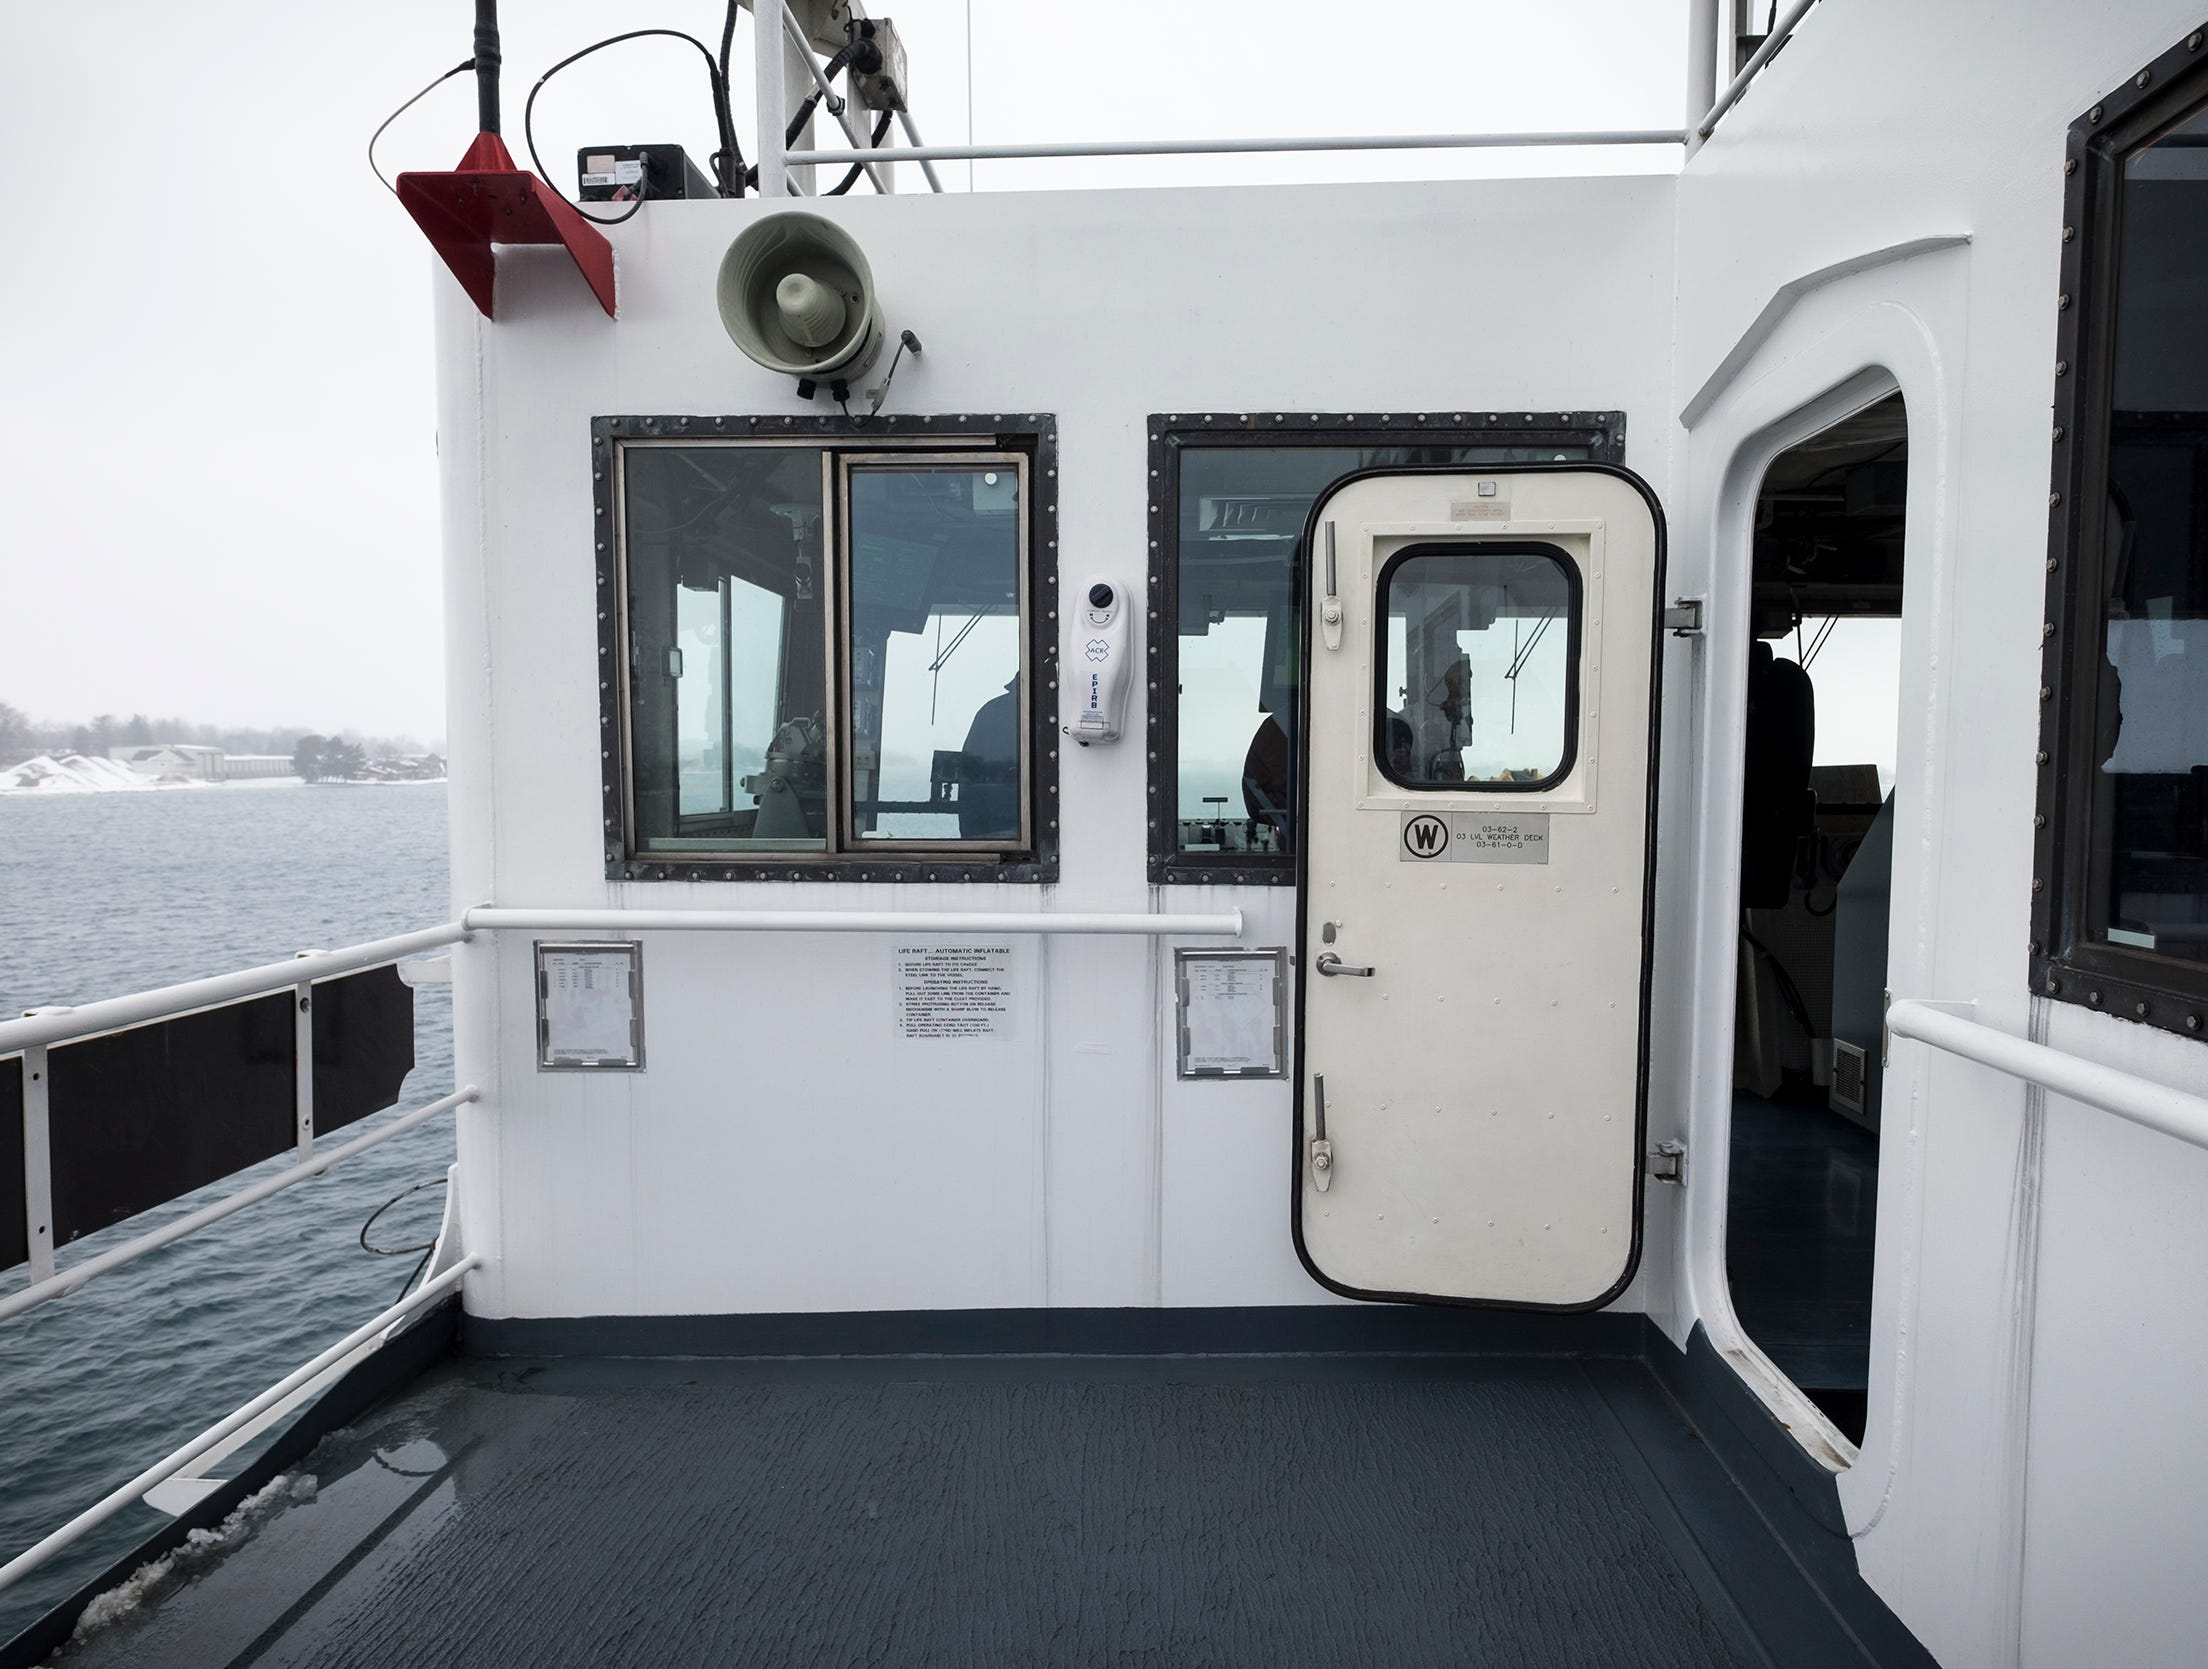 During periods of limited visibility, in addition to turning on navigation lights and stationing additional lookouts, the crew will open the doors to the bridge. This helps the crew to hear sounds in the fog.